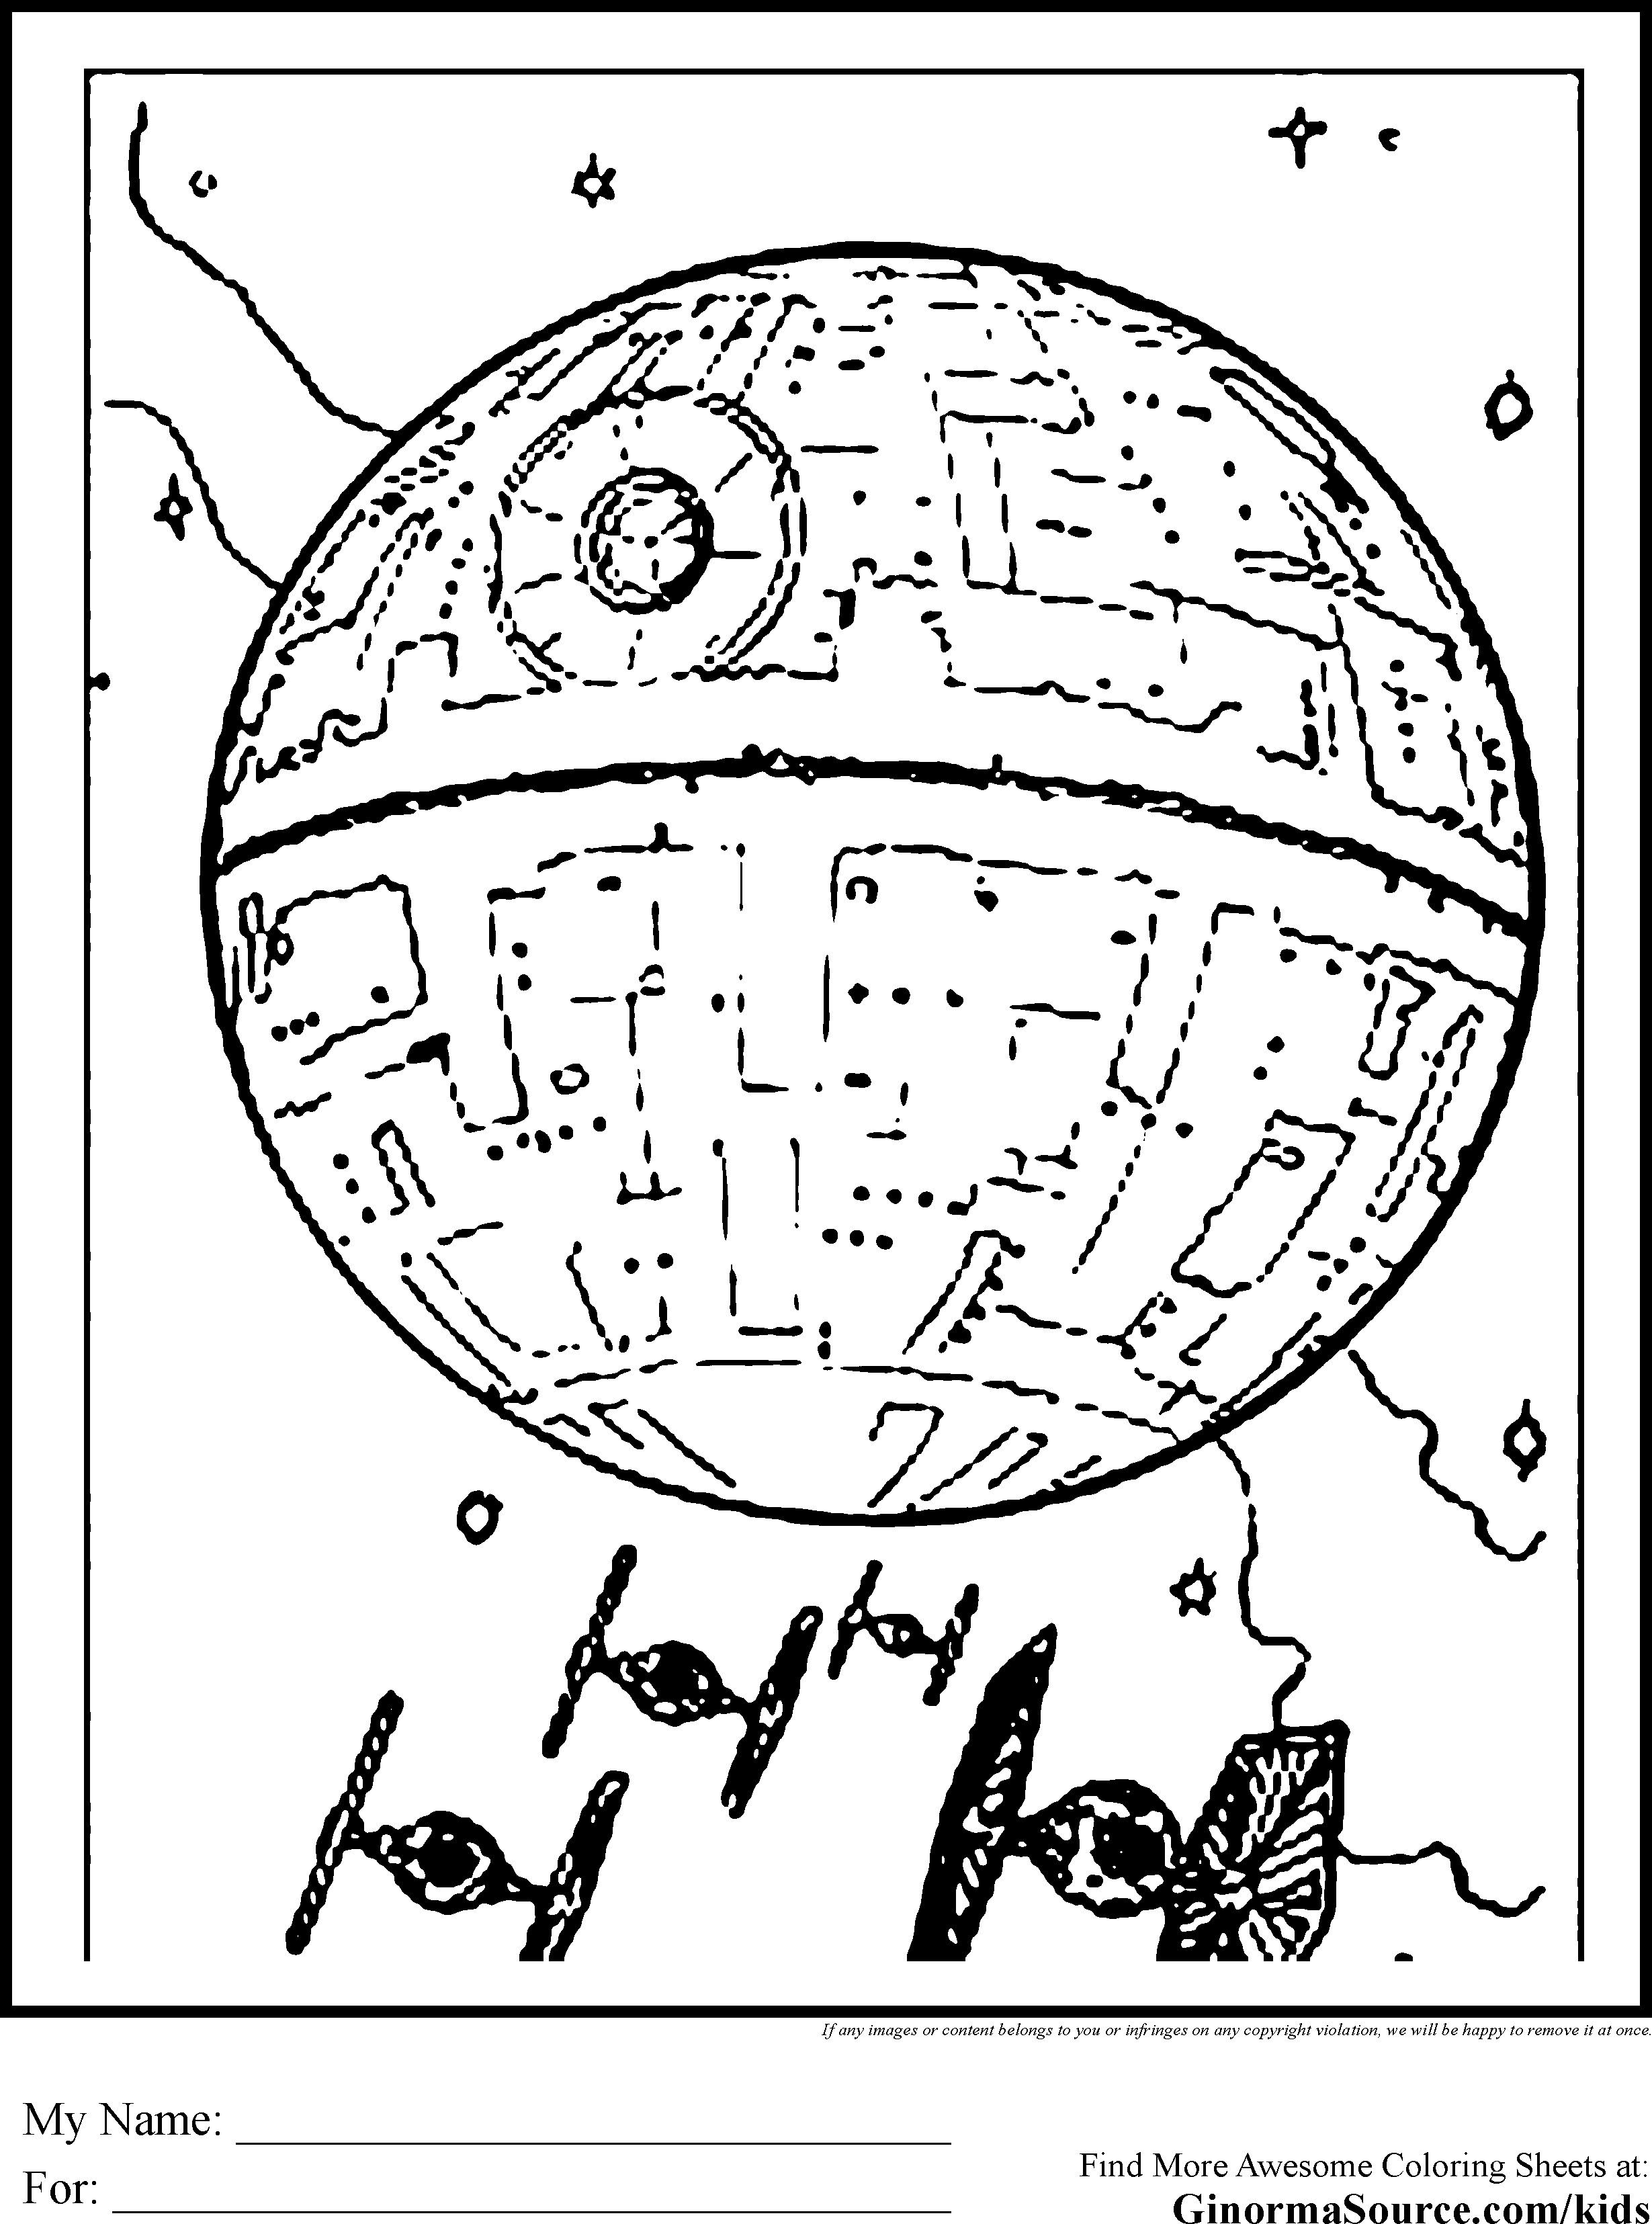 death star coloring sheet death star coloring page at getcoloringscom free sheet coloring star death